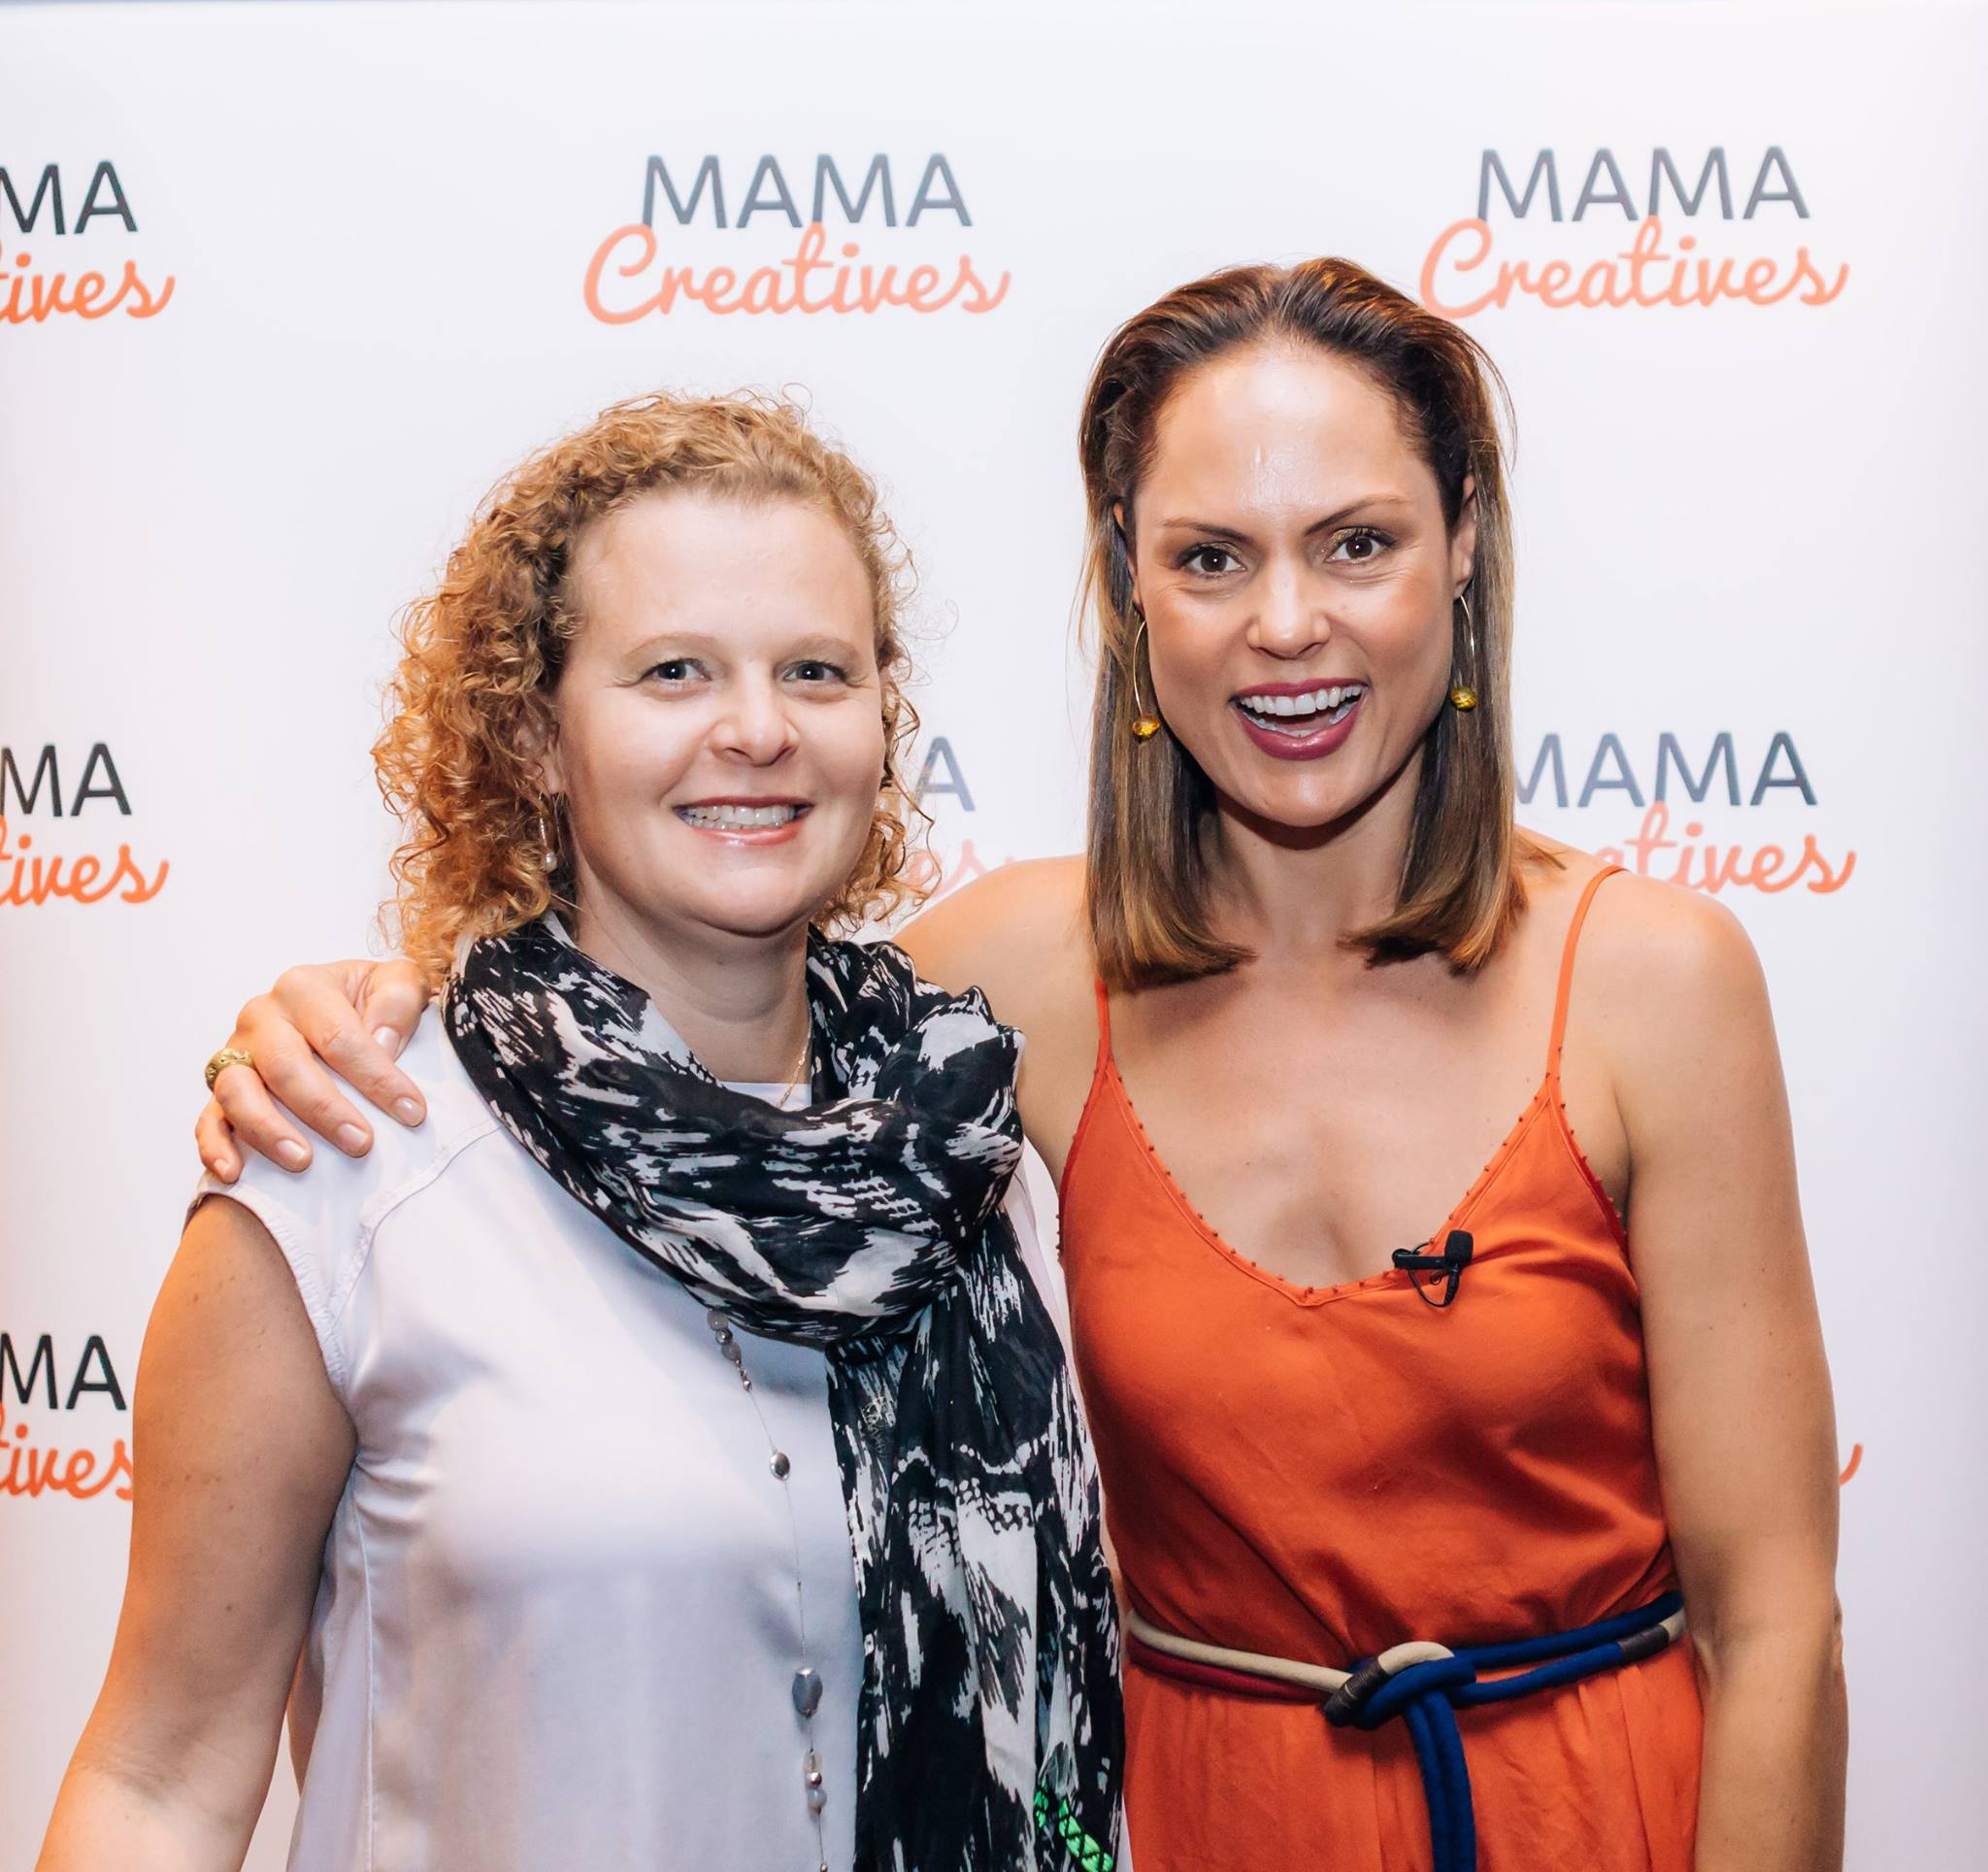 Lindi Glass, from Pure Good Bars, one of our generous event partners, hanging out on the red carpet with our inspiring Mother's Day guest mama, Zoe Bingley-Pullin.